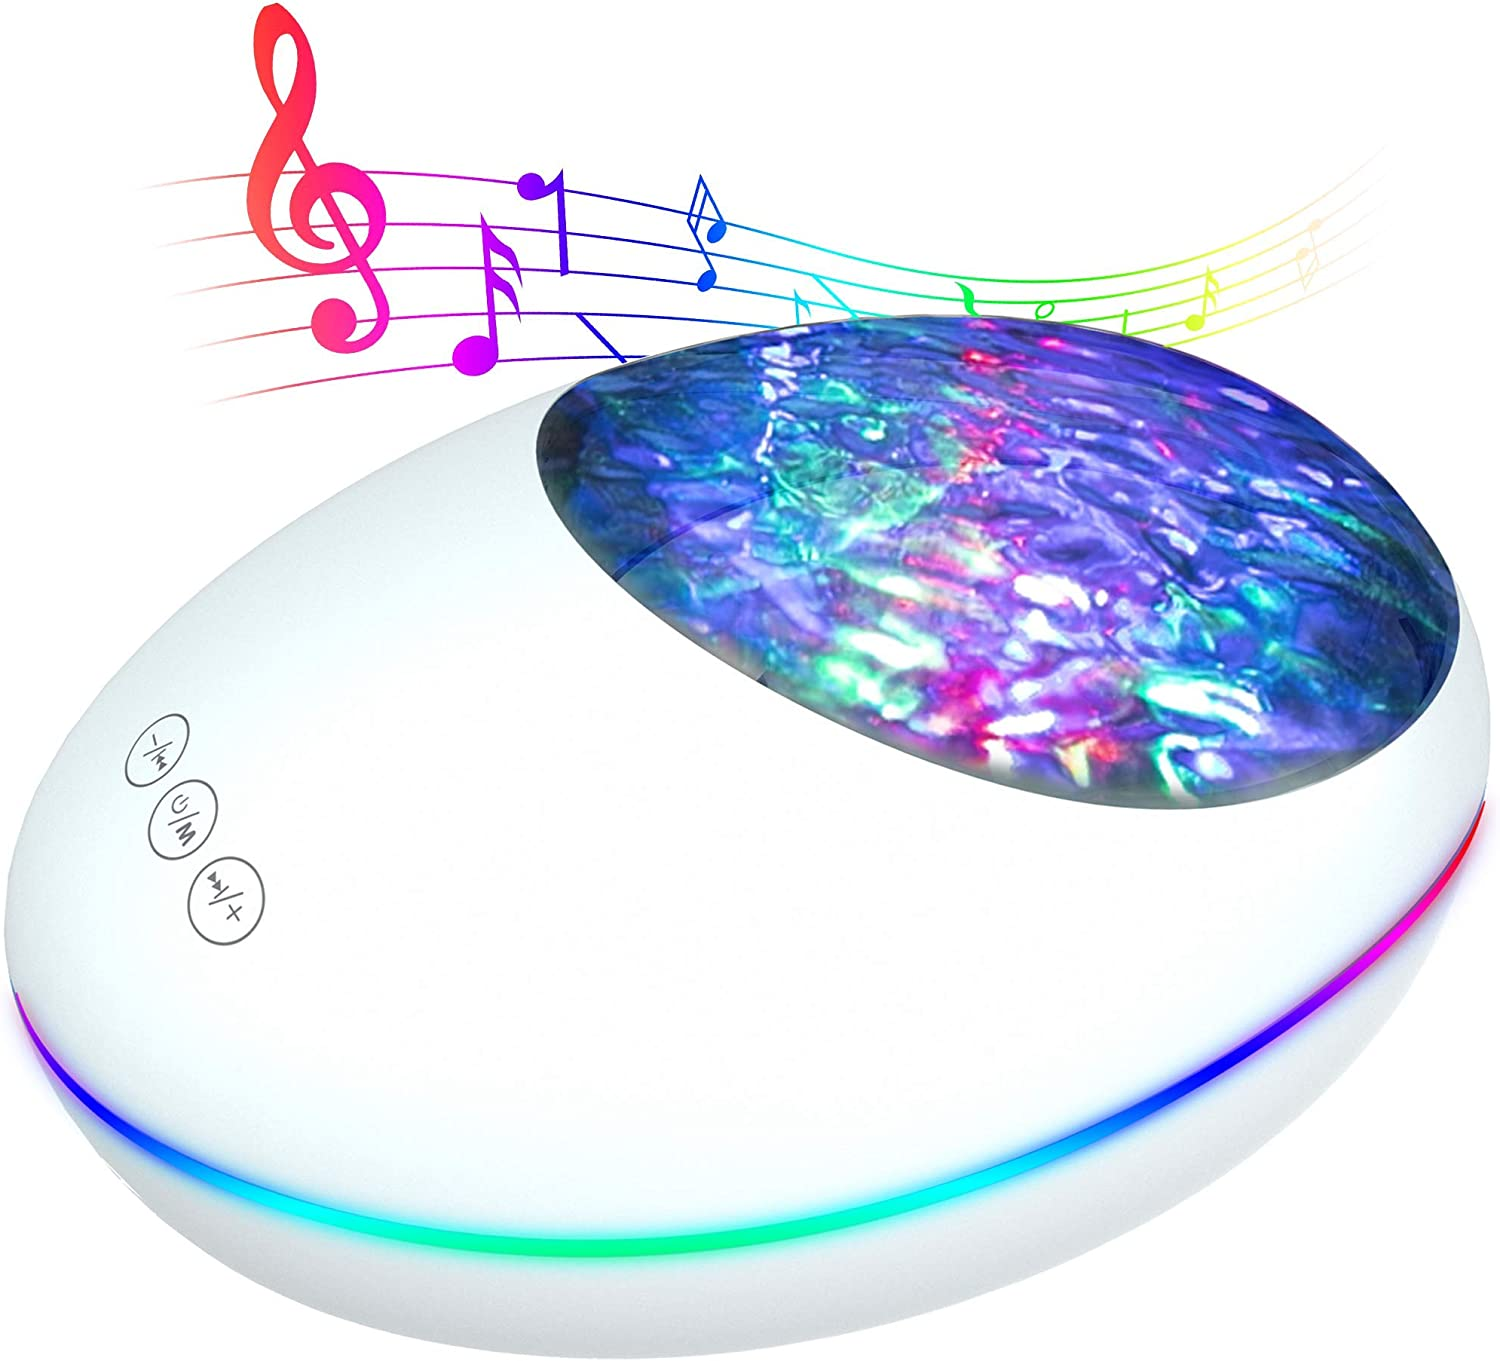 Ocean Wave Projector,LED Room Lght Projector for Bedroom Decor with 7 Lighting Modes 12 LED Adjustable Lightness Bluetooth Music Speaker Support AUX TF Card Night Light for Baby Kids Adult Living Room